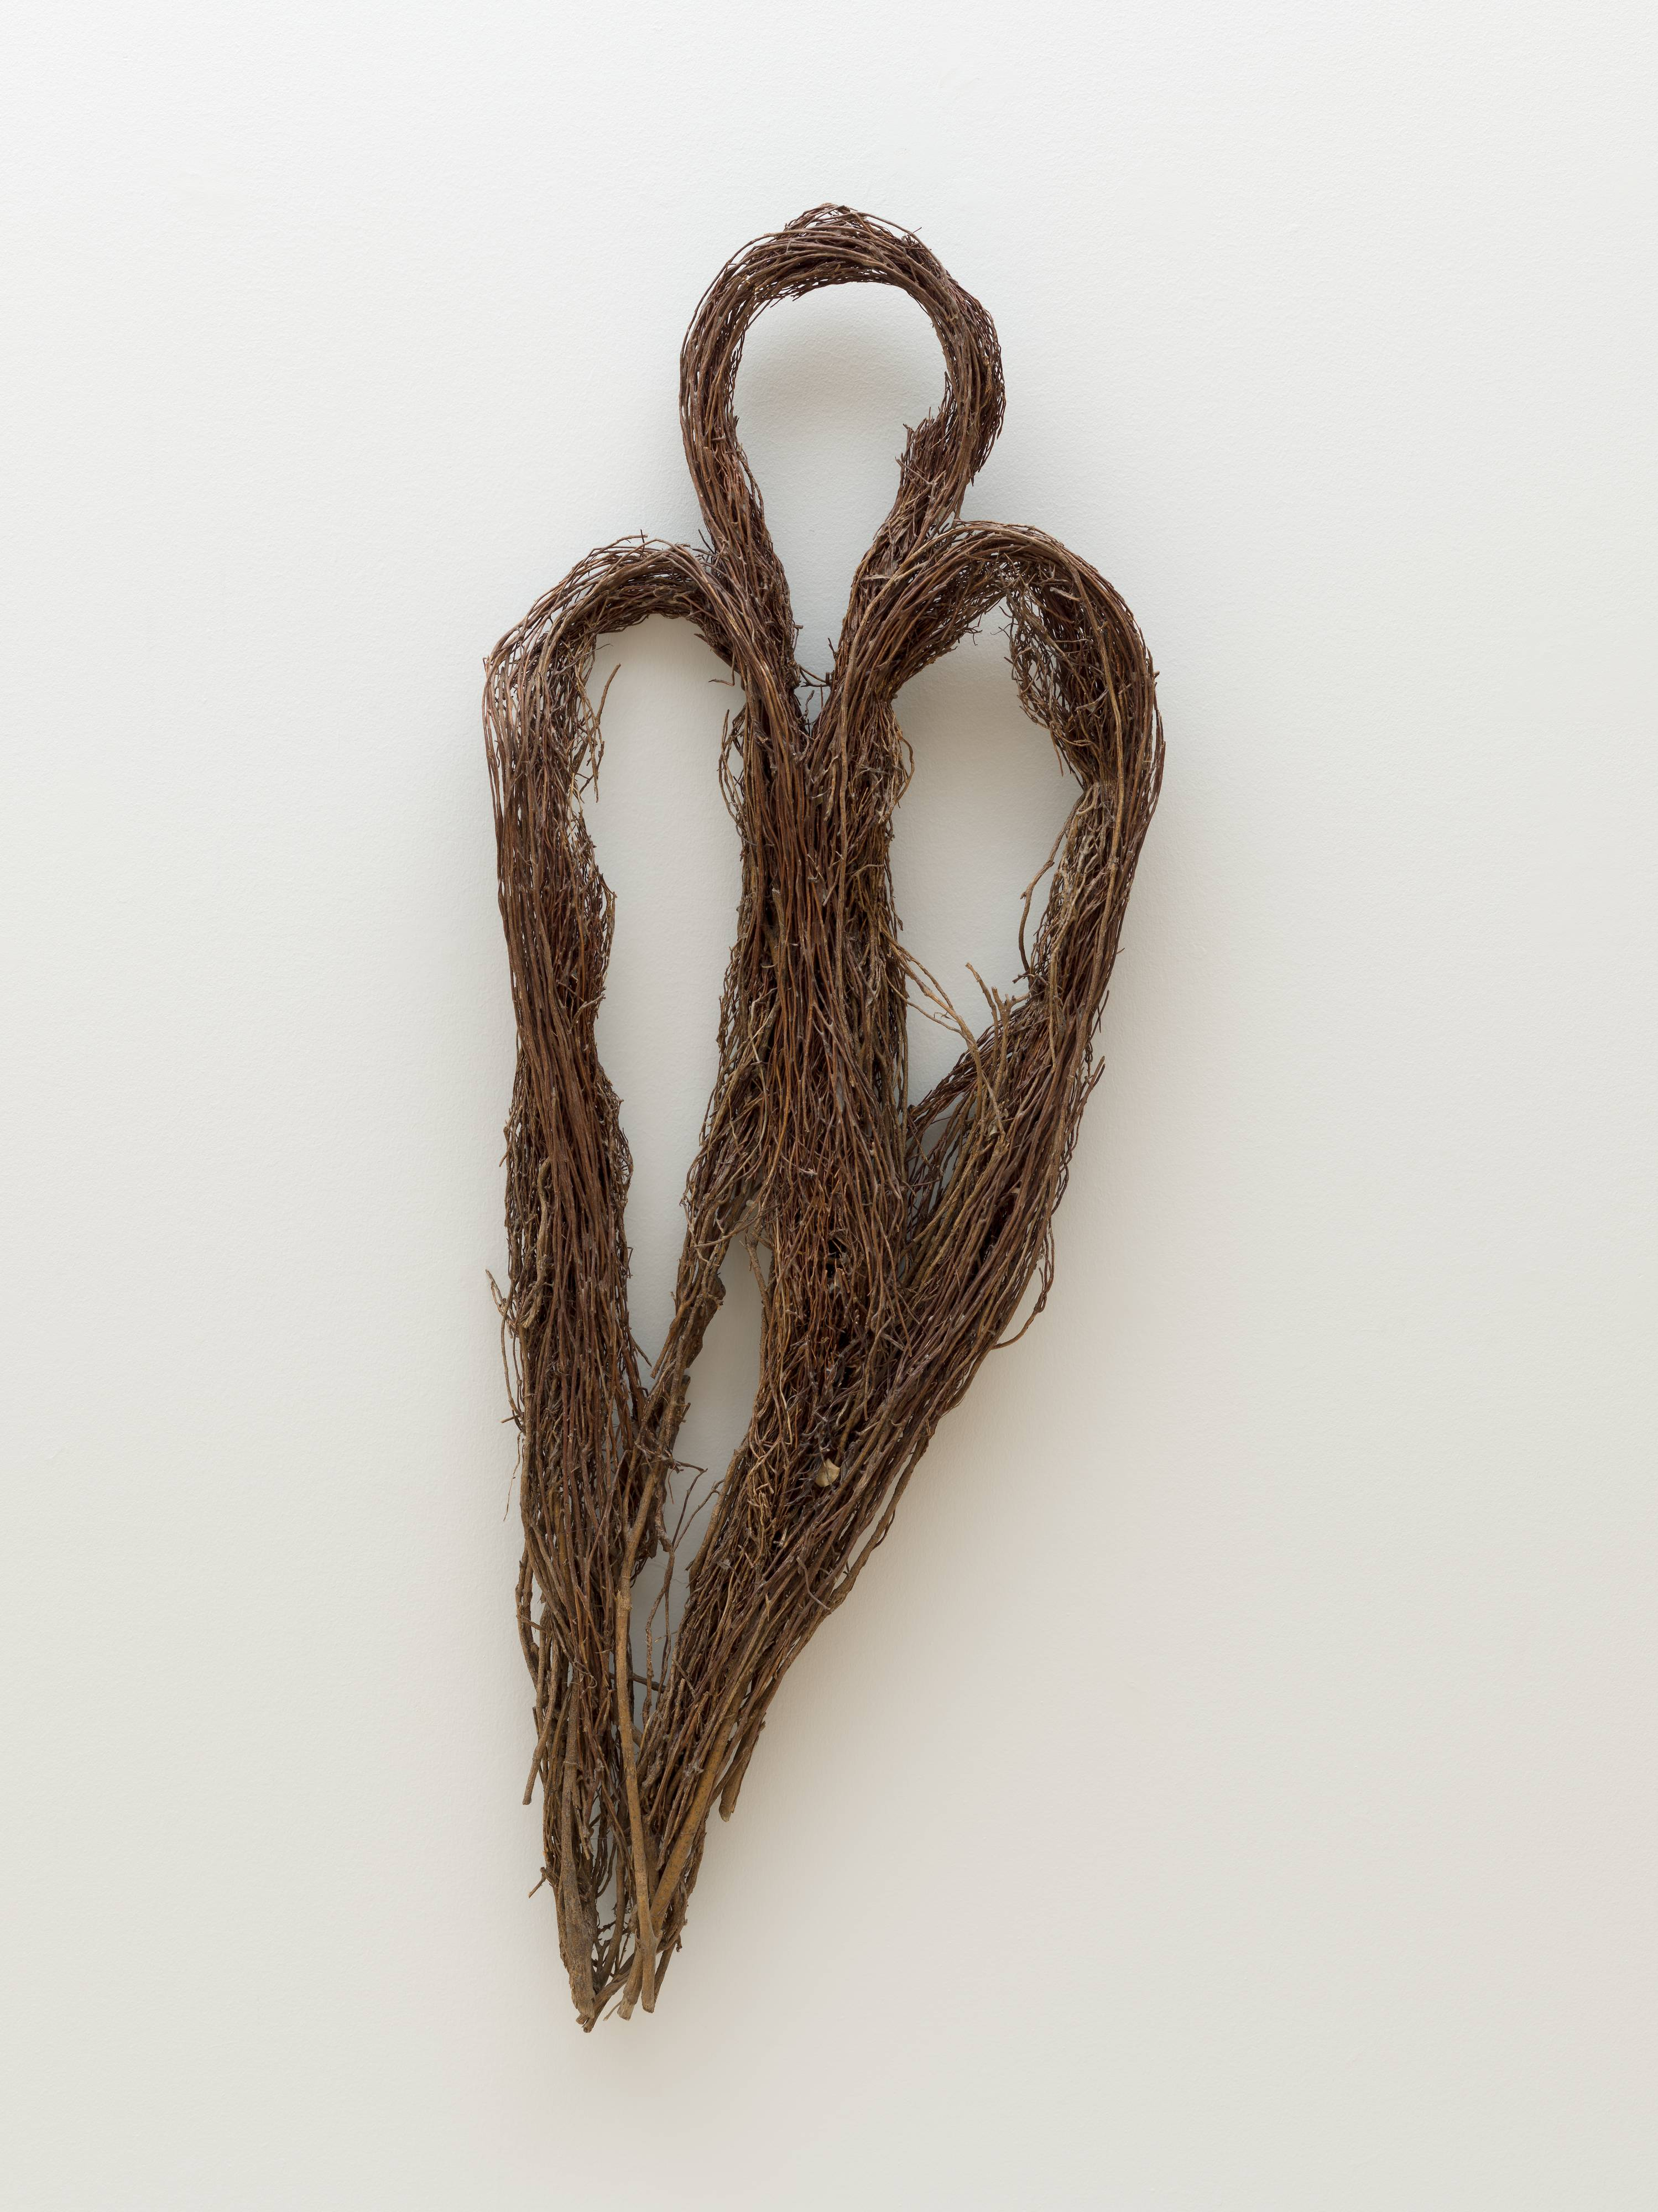 <p>This five foot tall [hanging?] sculpture comprises three loops of bent ficus-tree roots. The loops of bundled roots are long and thin, bent into smooth curves at the top and gathered to a point at the bottom. Individually they resemble the eyes of large sewing needles. Two of the loops have been positioned side-by-side to create an elongated heart shape. The third, slightly shorter loop has been slipped between them, adding an extra bump above the middle of the heart's arches. The thin brown roots are dry and wiry, and errant strands and small yellowed leaves poke out from the bundled loops in several places. No wires, strings, or binding agents are readily discernible.</p>